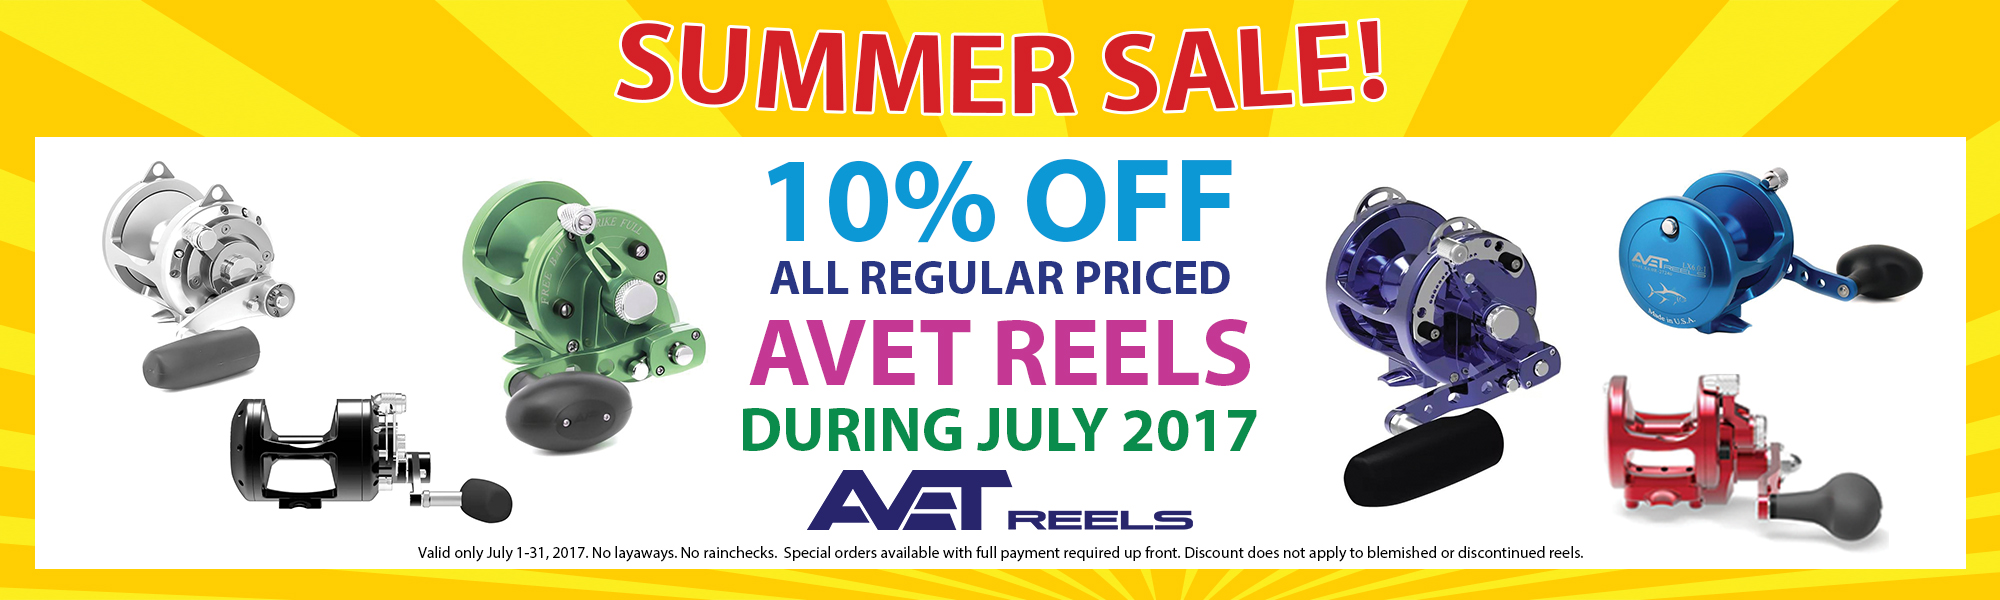 10% Off Avet Reels during July 2017